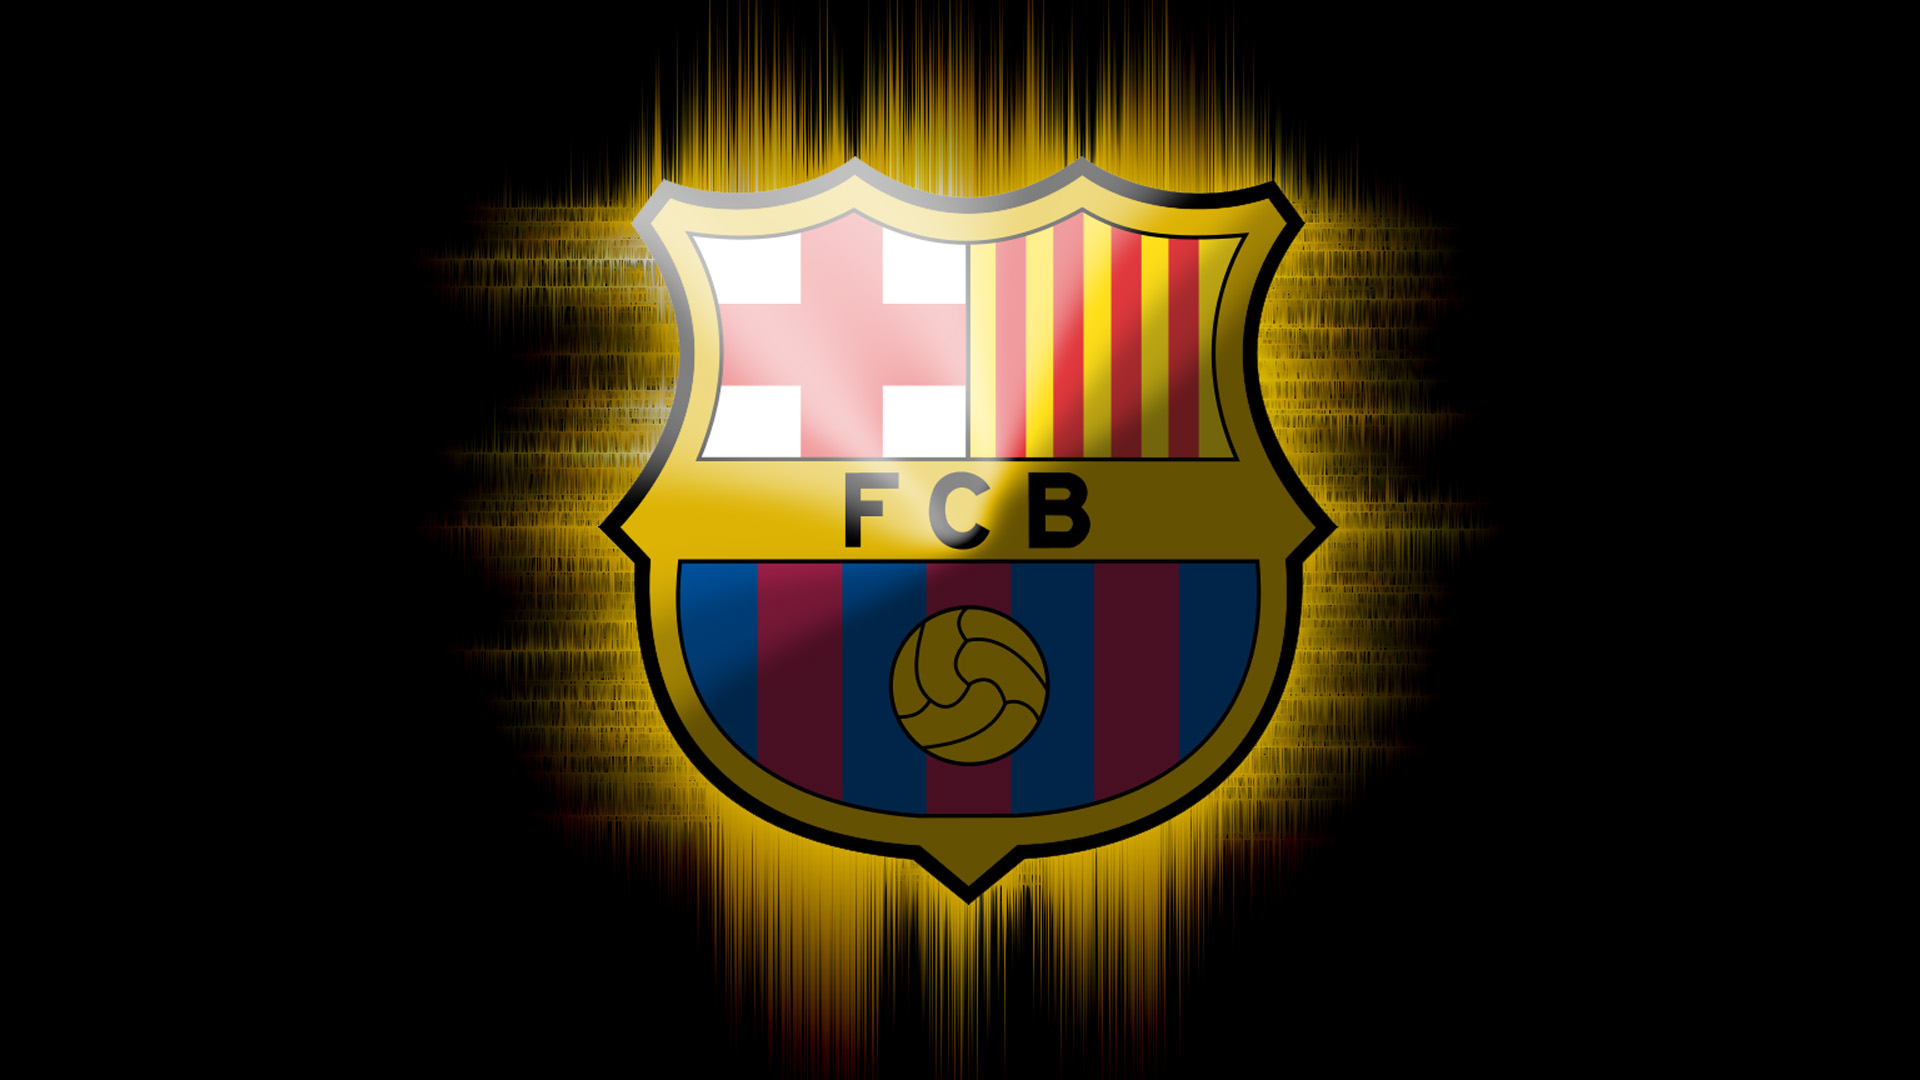 Barcelona Logo 3d Wallpaper Fcb Wallpapers Hd Free Download Pixelstalk Net